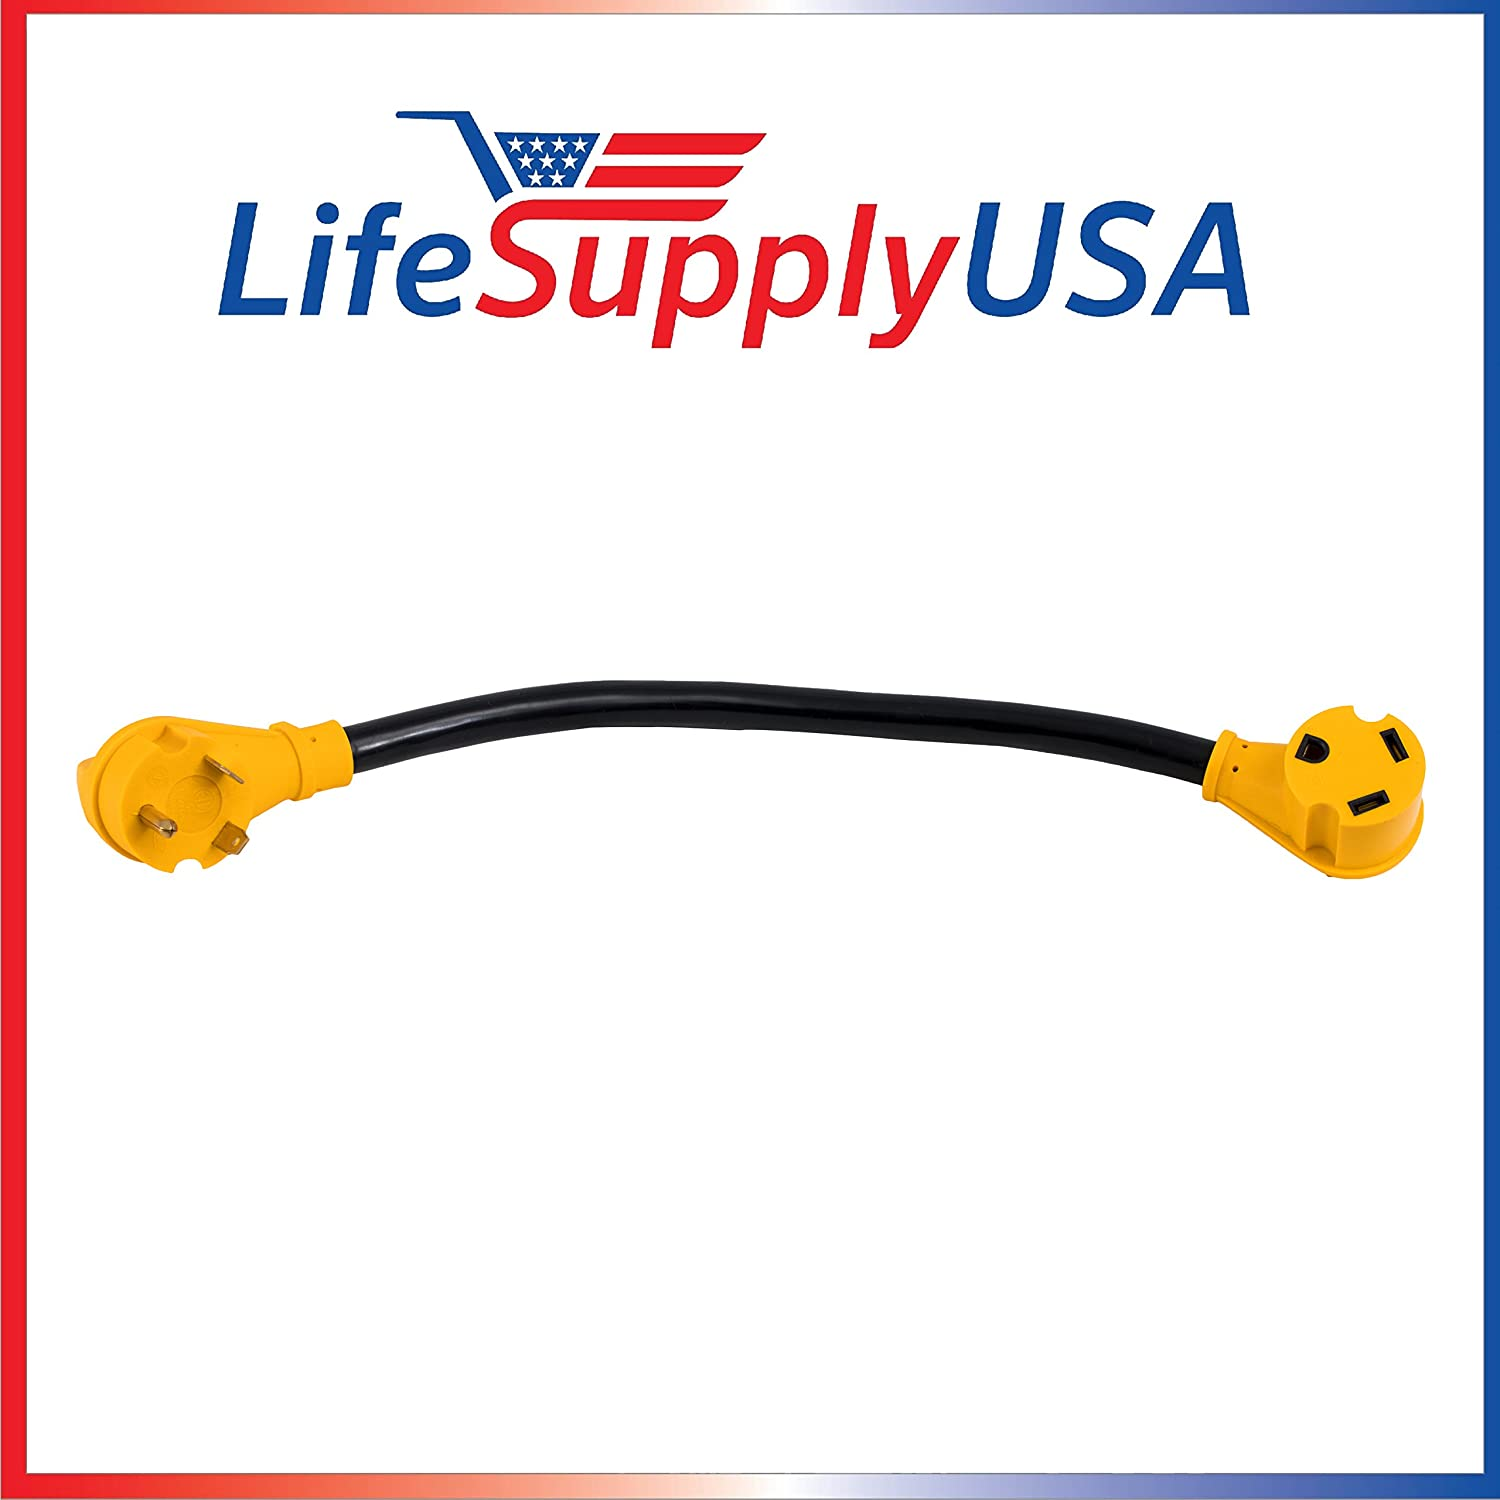 LifeSupplyUSA 50 Pack - 25 Feet RV Extension Cord with PowerGrip Handle, Hook and Loop Strap 30 Amp 10-Gauge 10AWG3 10/3 125V STW TT30P/TT30R 25ft